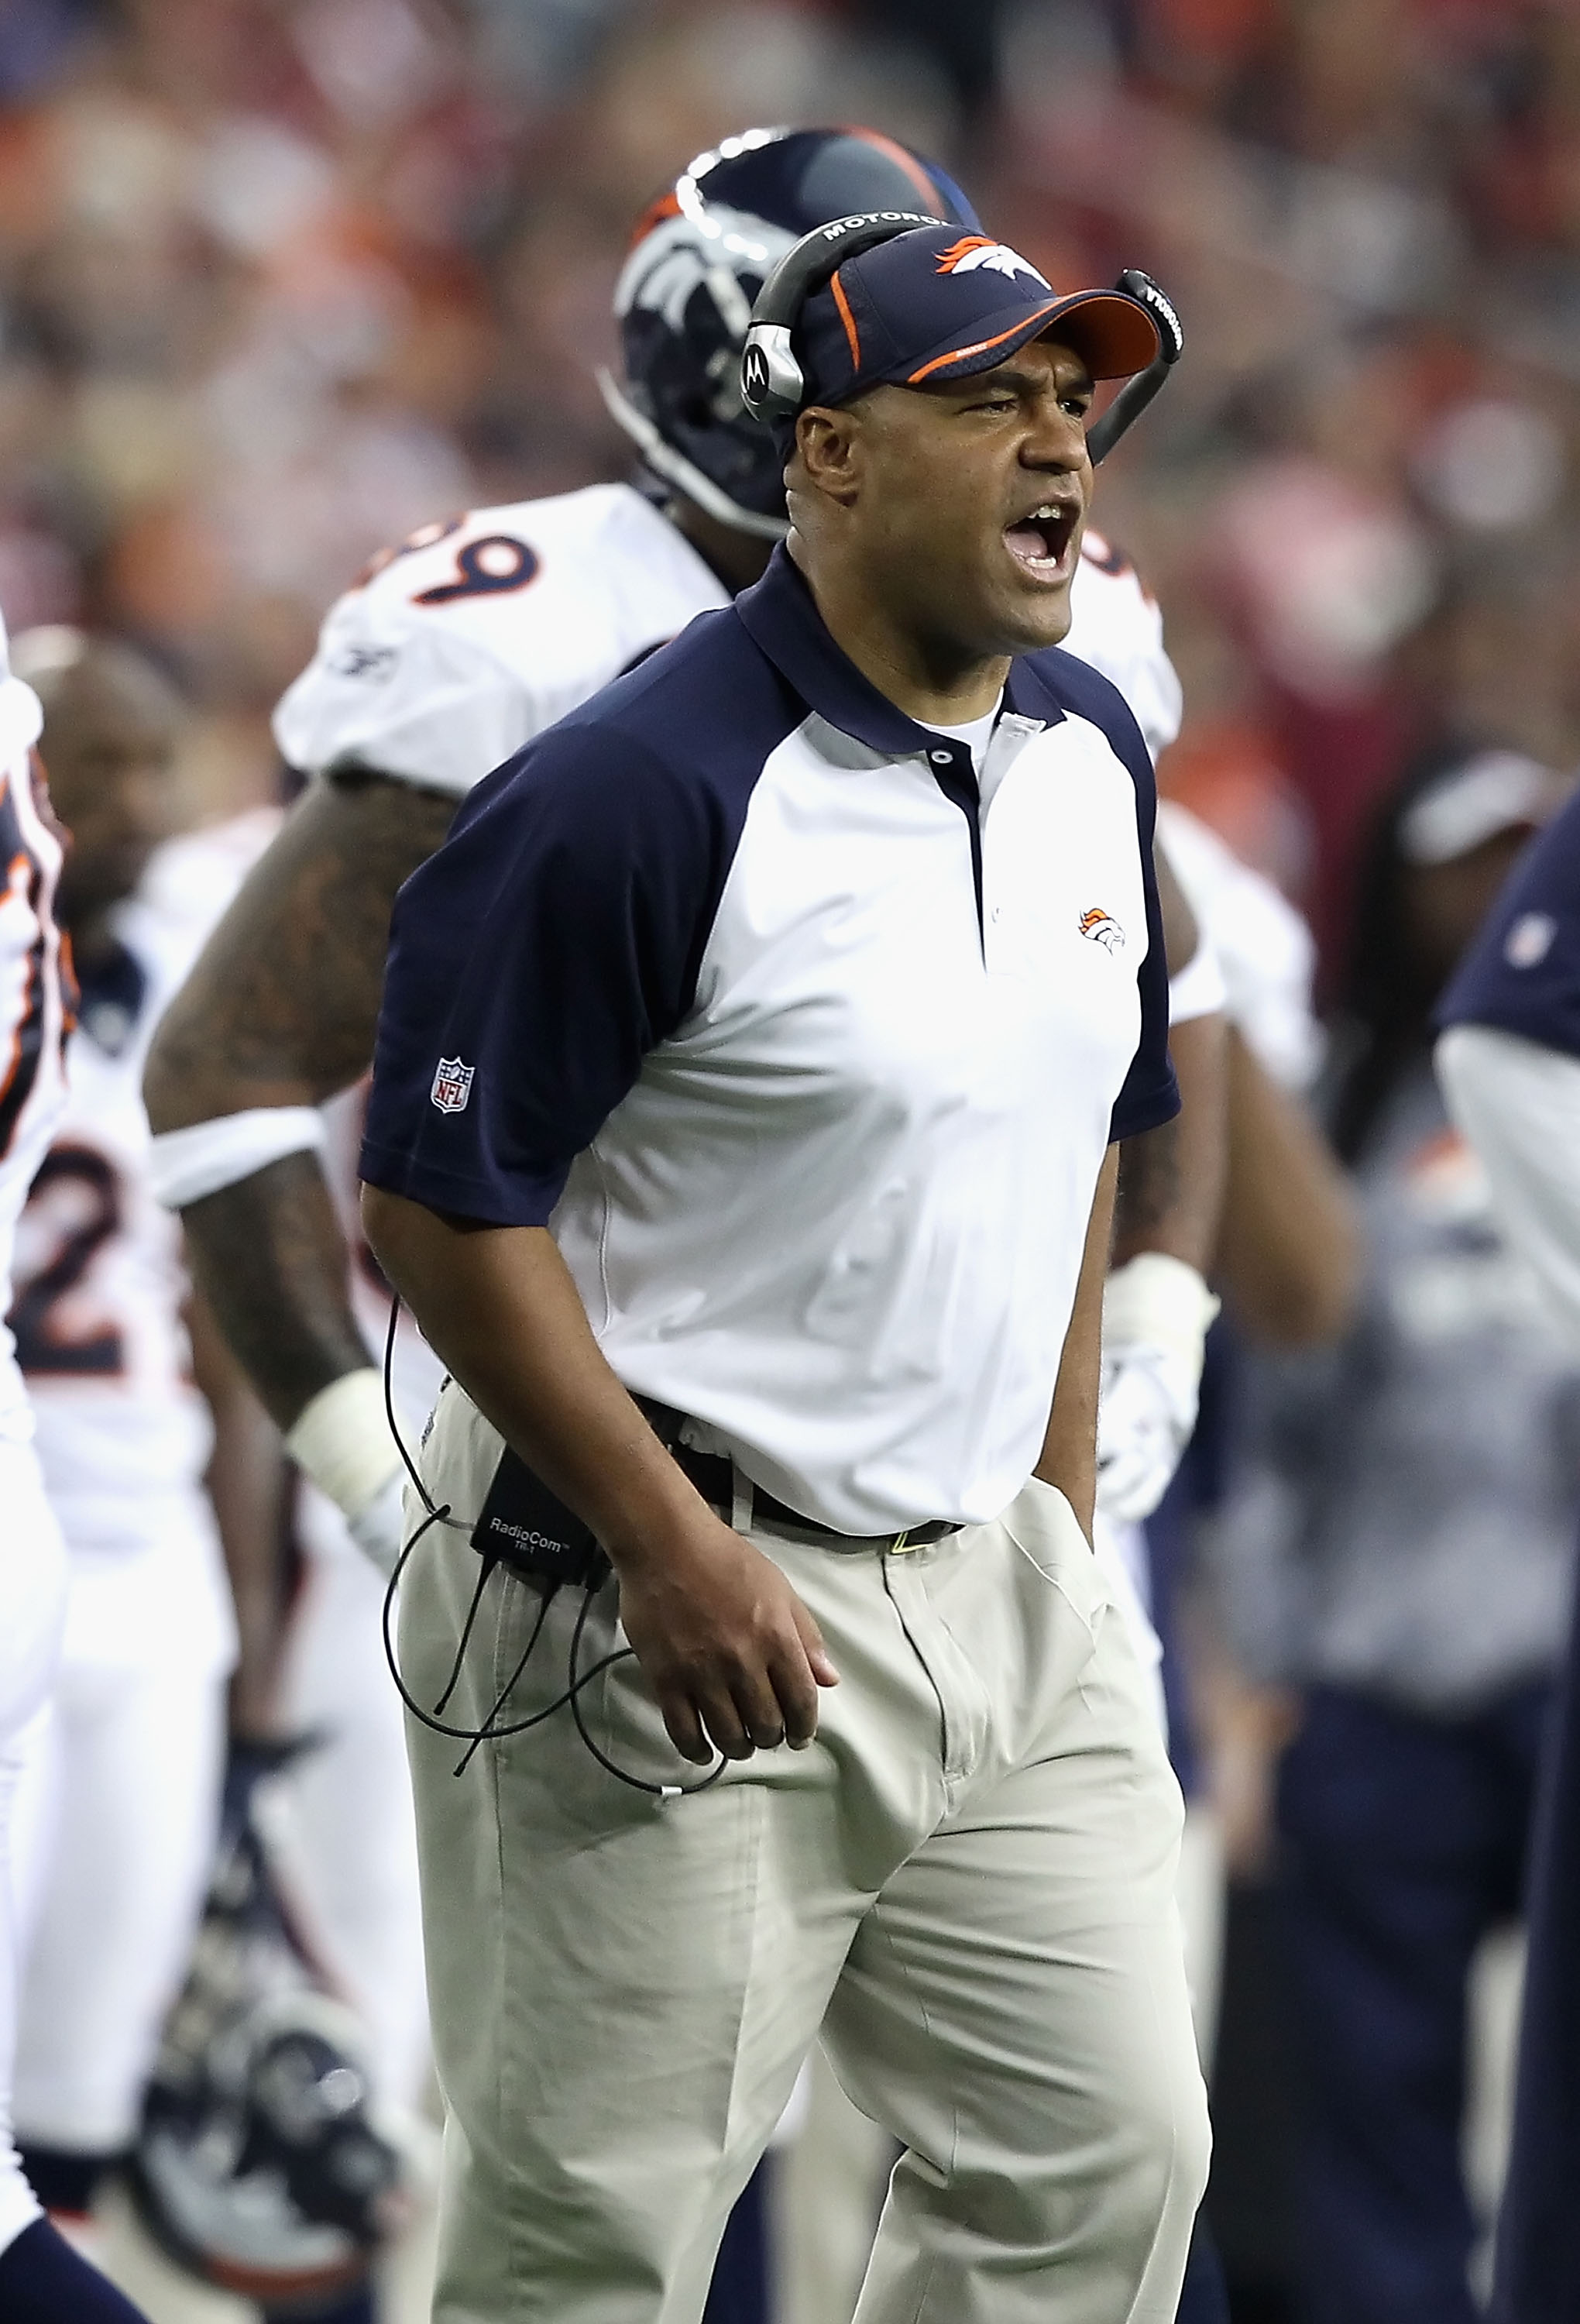 GLENDALE, AZ - DECEMBER 12:  Interim head coach Eric Studesville of the Denver Broncos reacts during the NFL game against the Arizona Cardinals at the University of Phoenix Stadium on December 12, 2010 in Glendale, Arizona. The Cardinals defeated the Bron